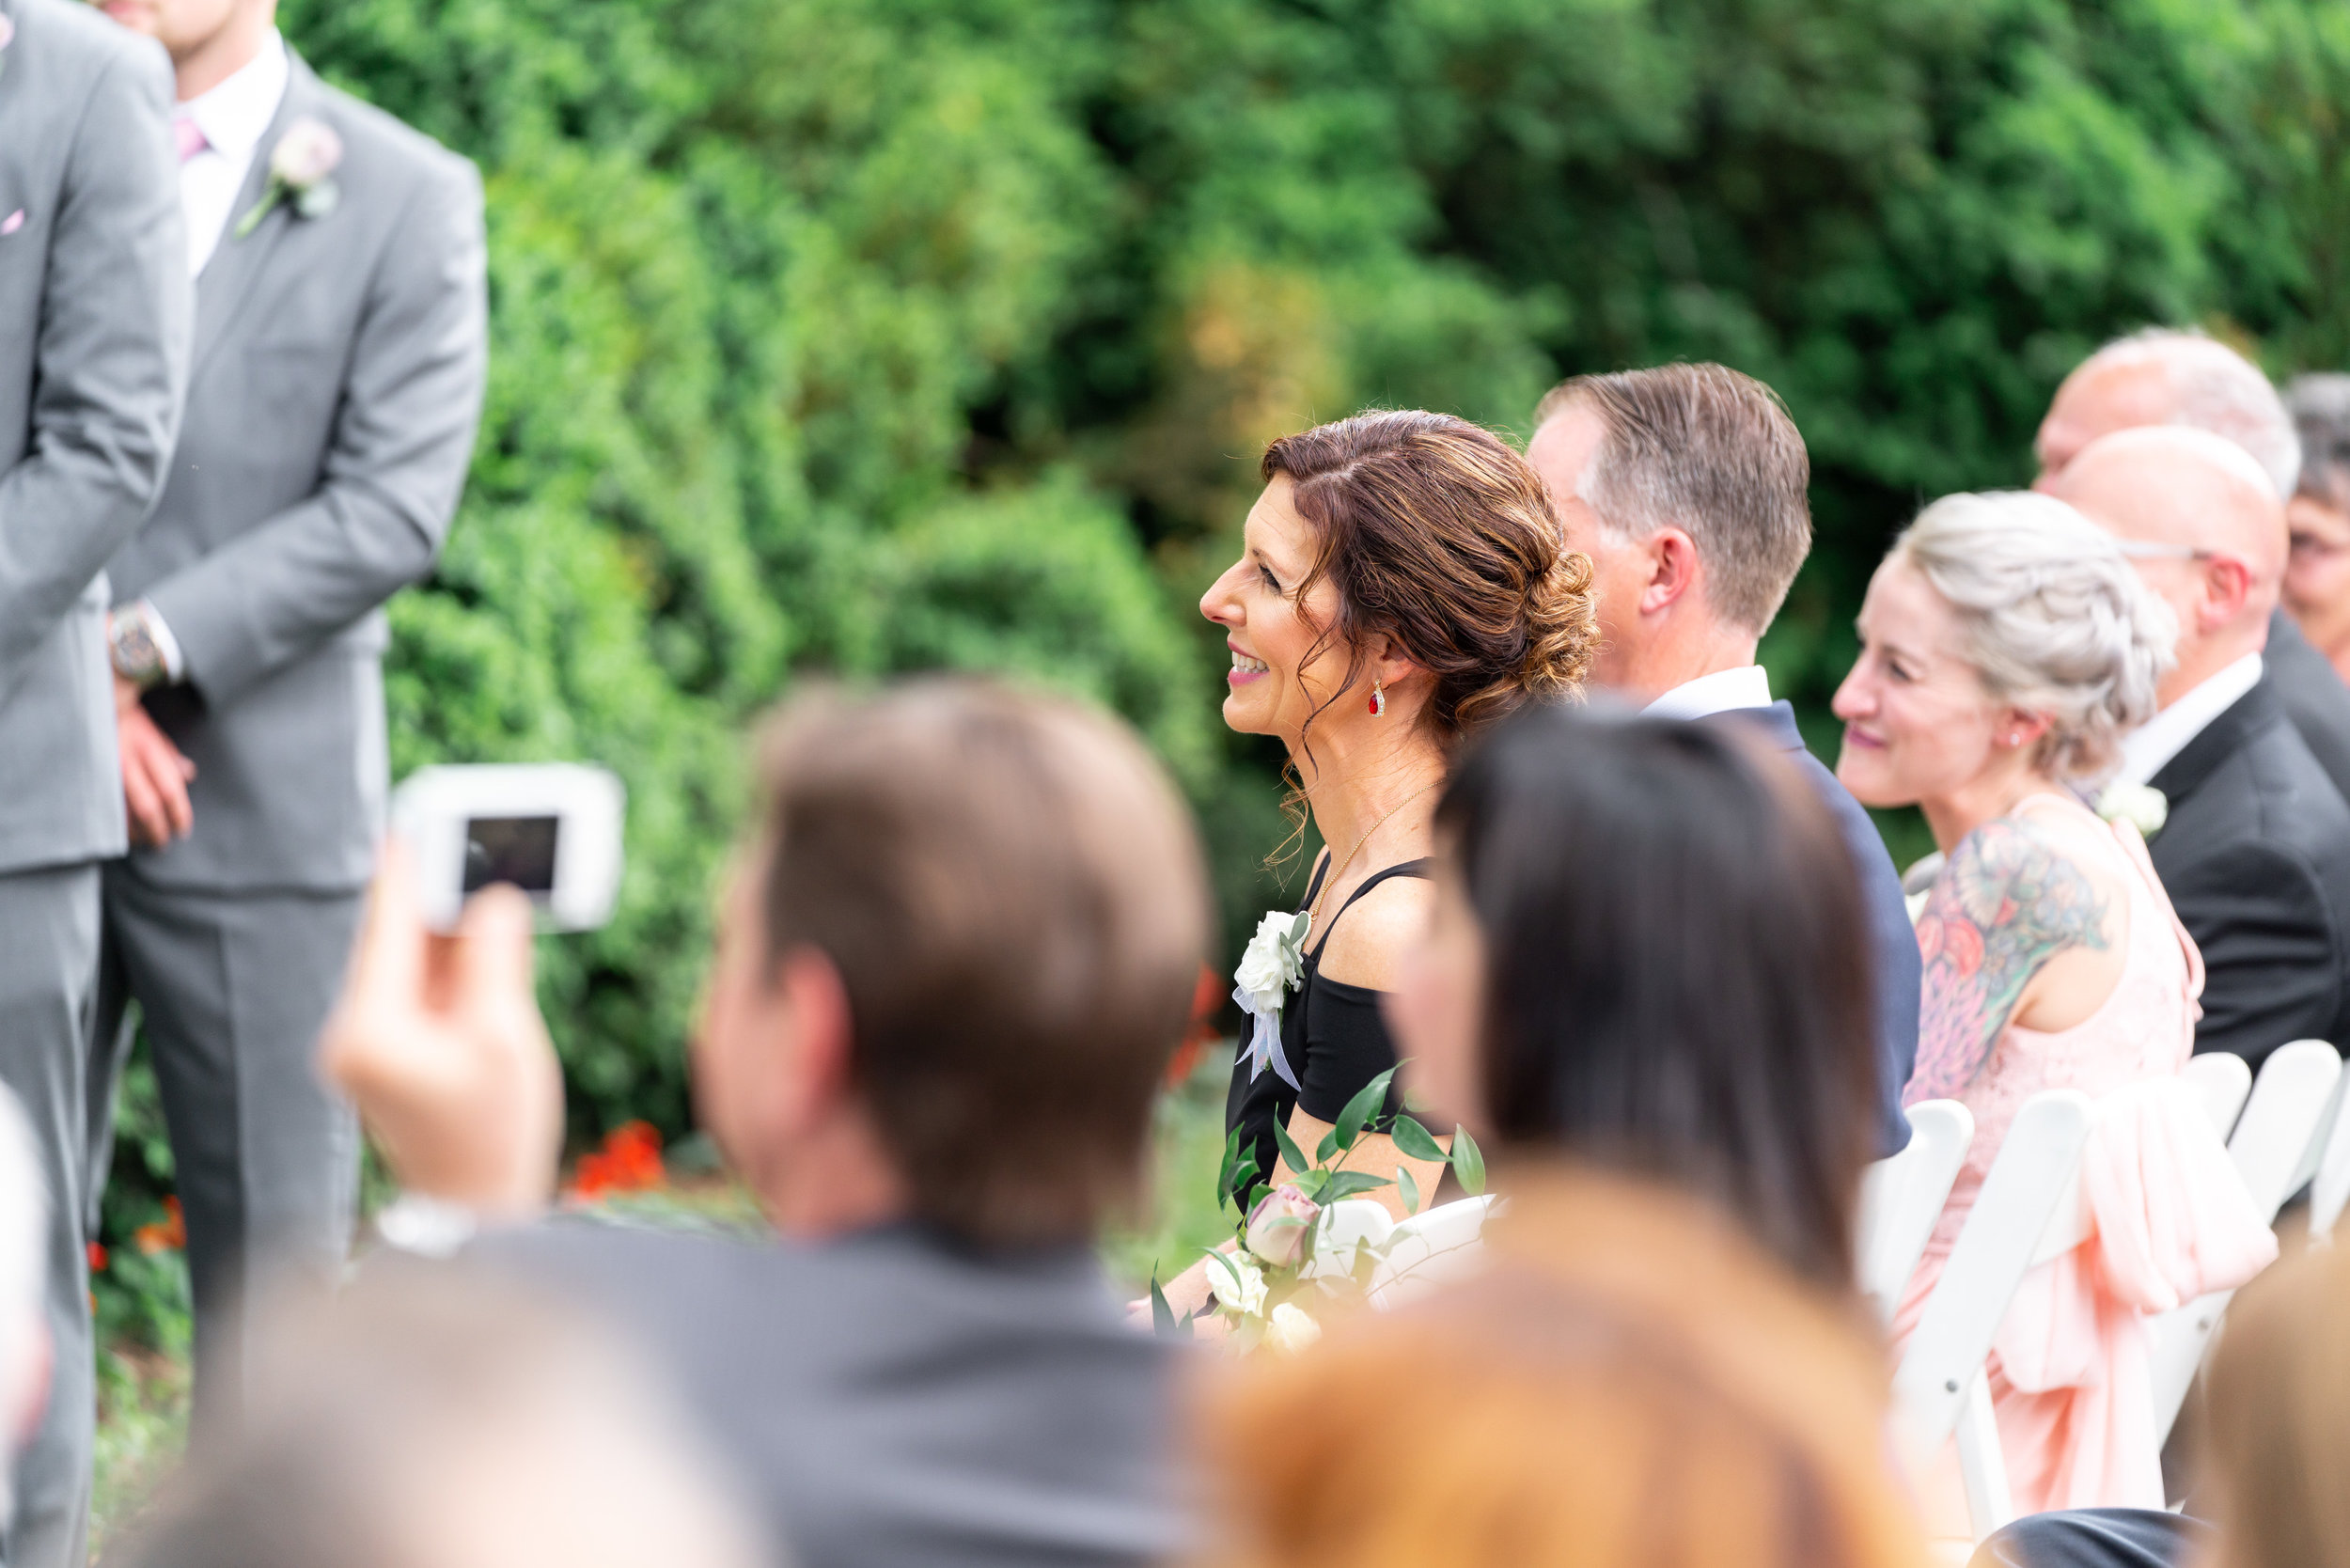 Mother of the groom watches wedding ceremony at Rockville's Glenview Mansion